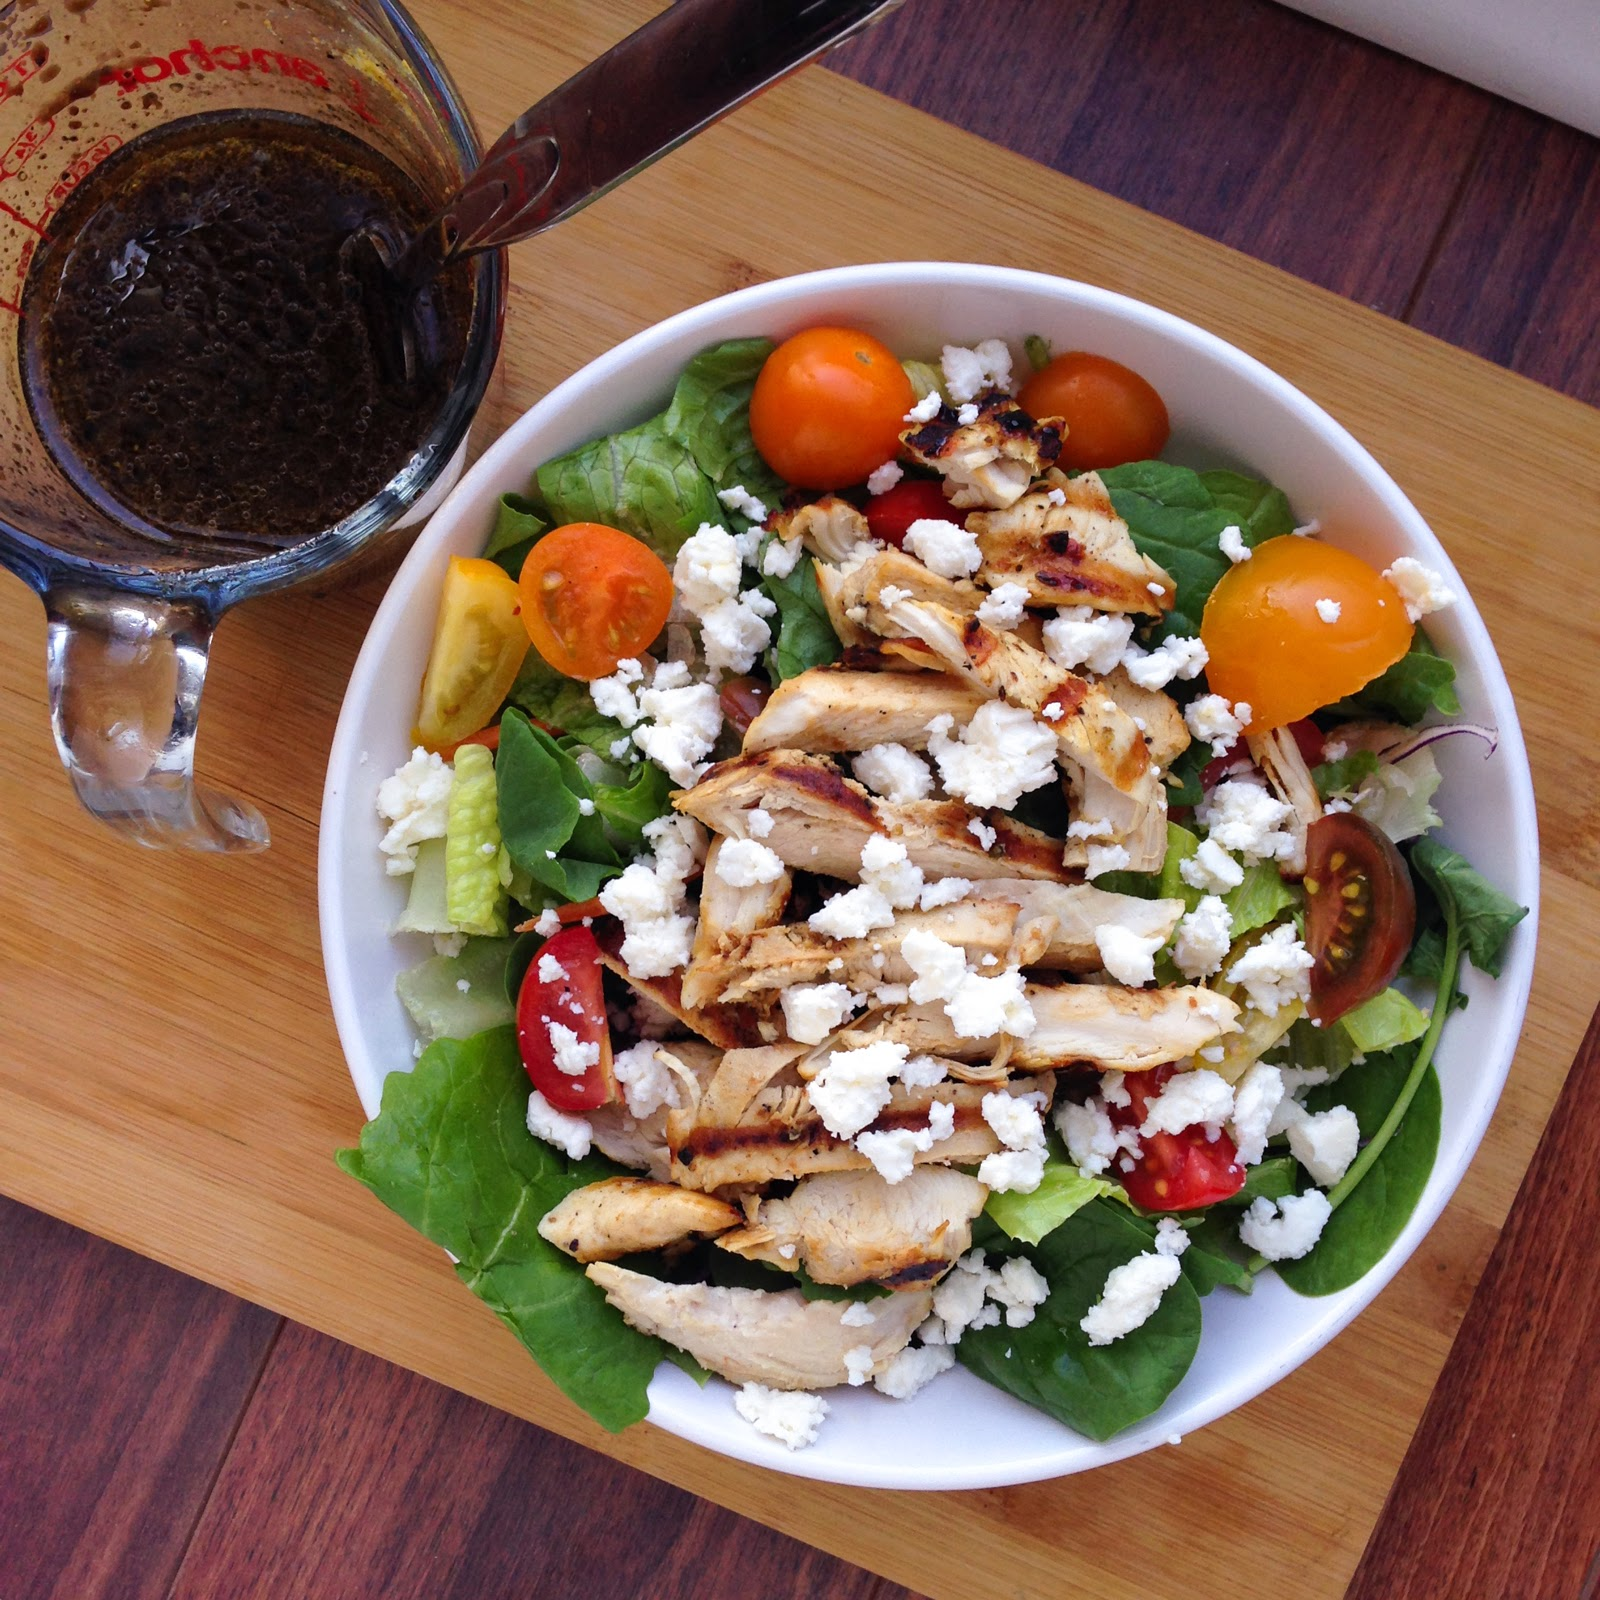 salad with chicken, tomatoes, feta